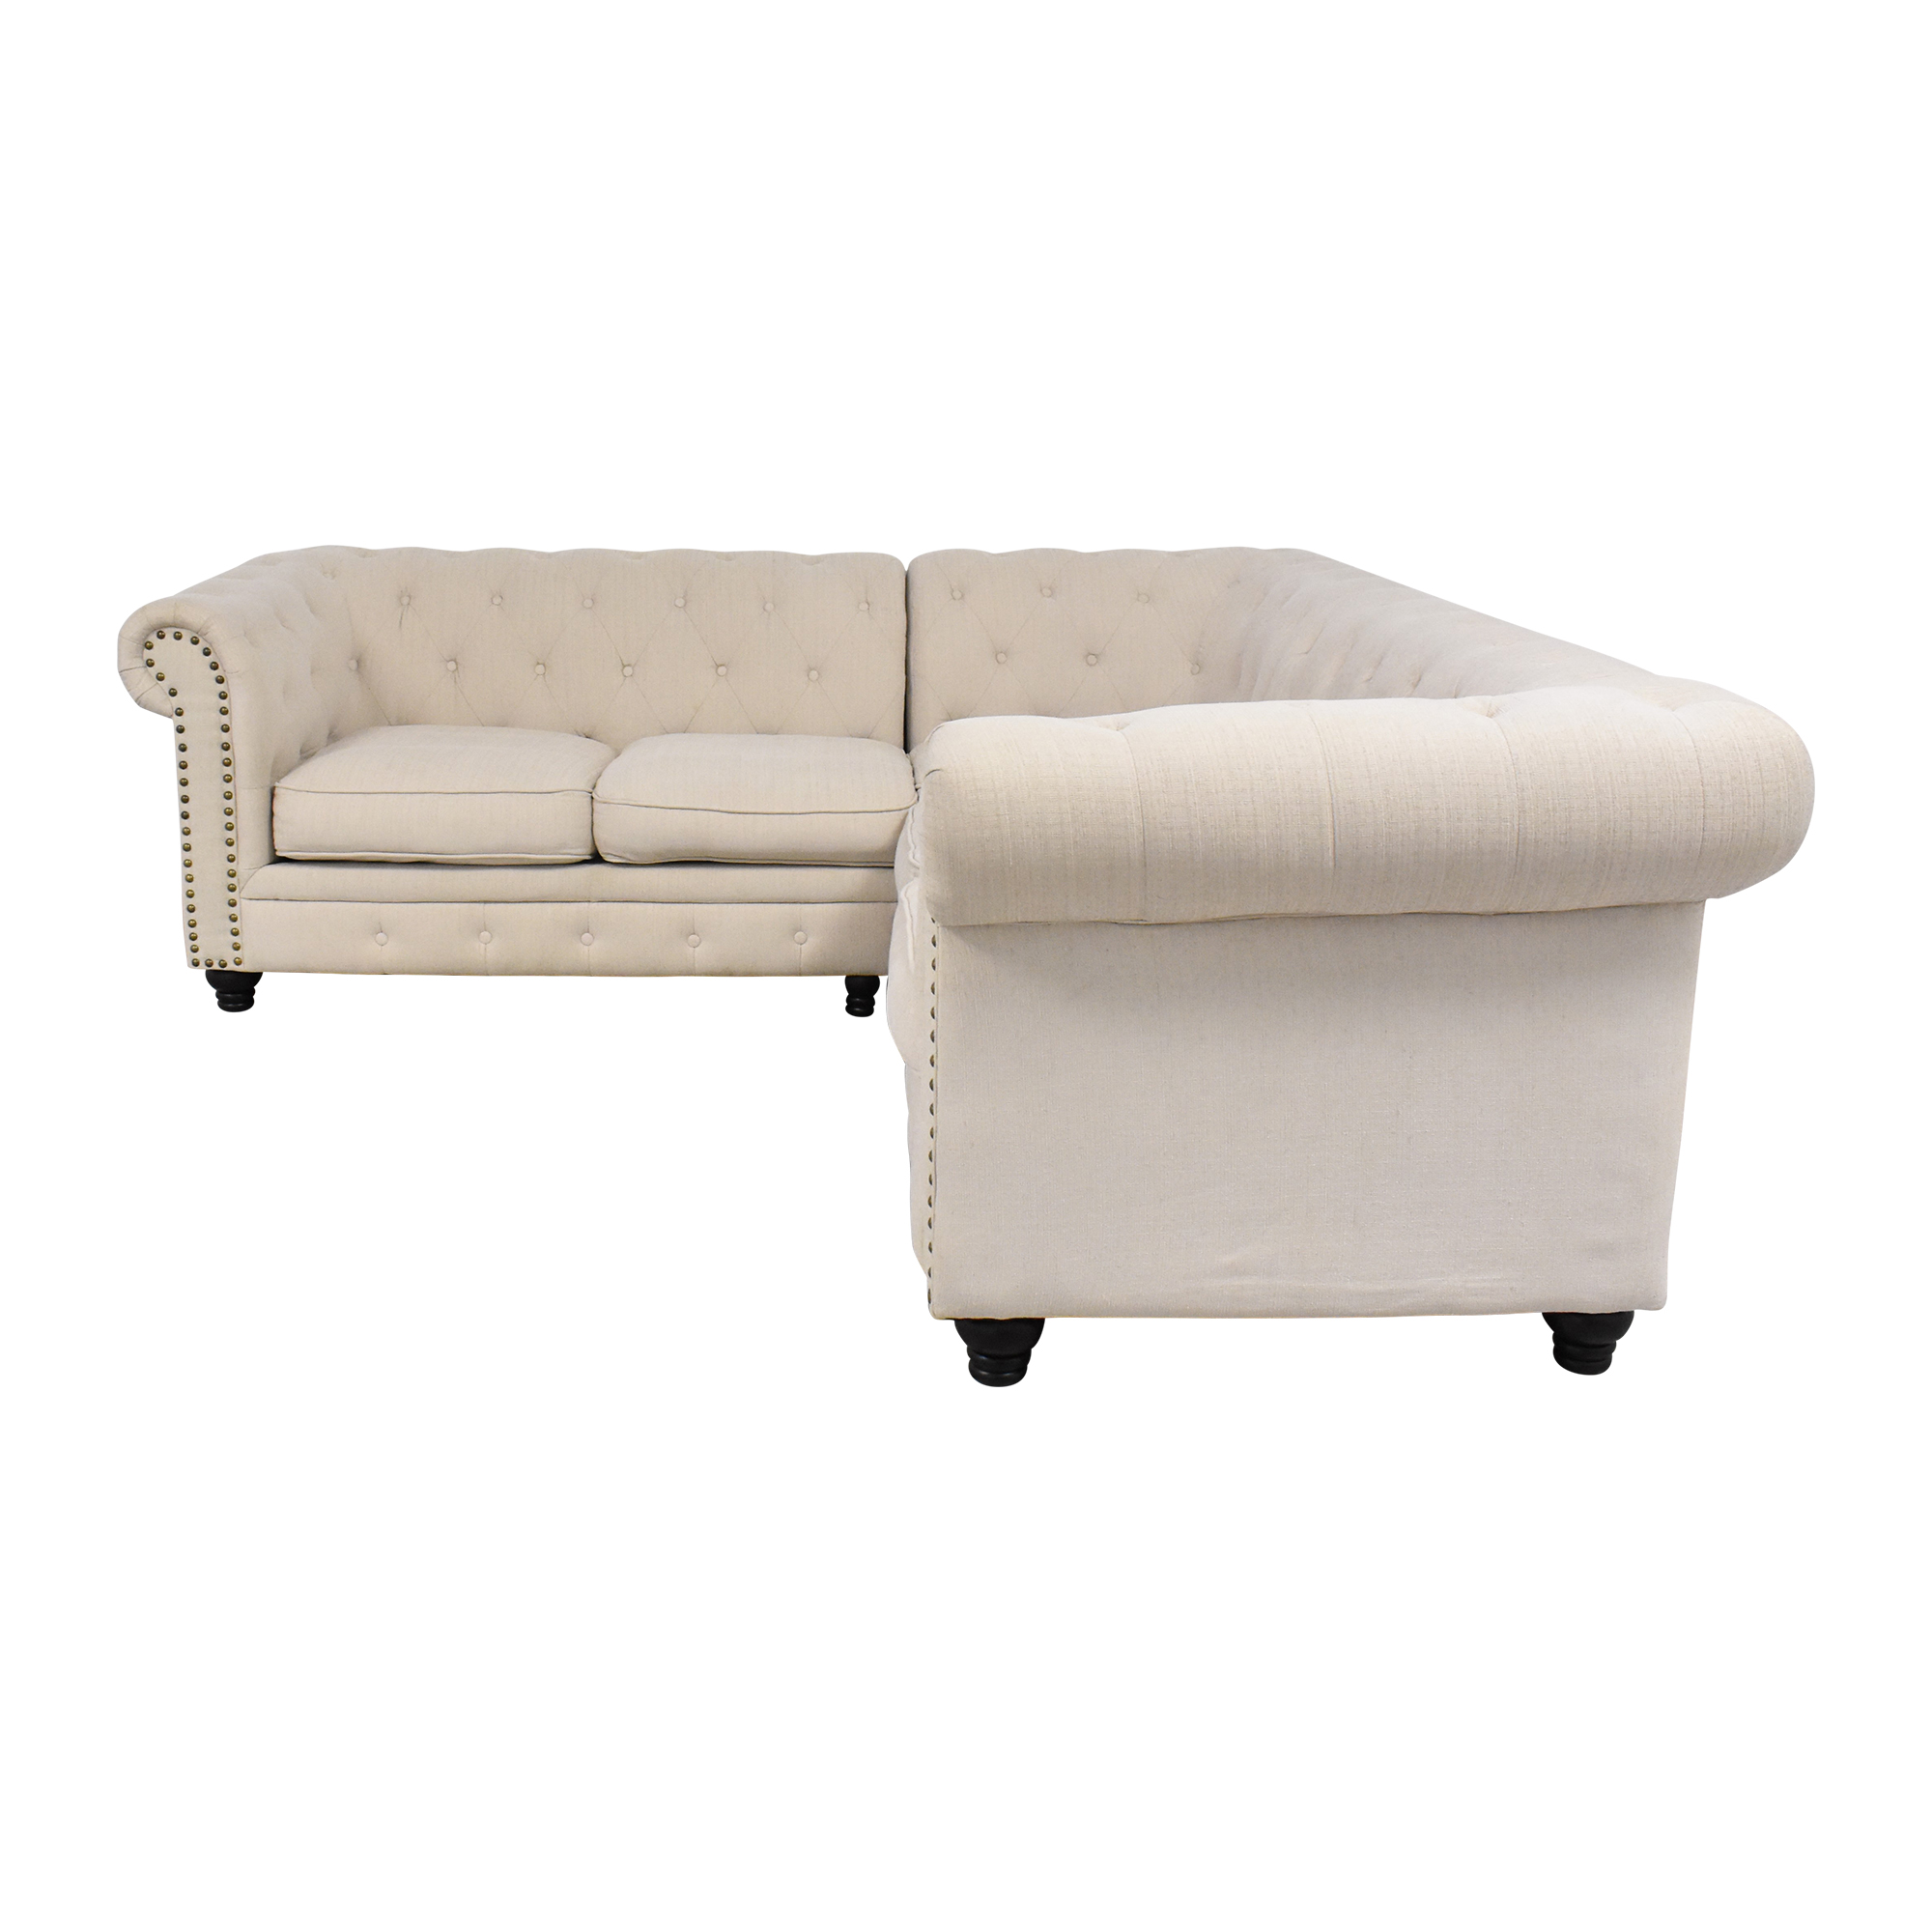 buy Furniture of America Stanford Tufted Sectional Sofa Furniture of America